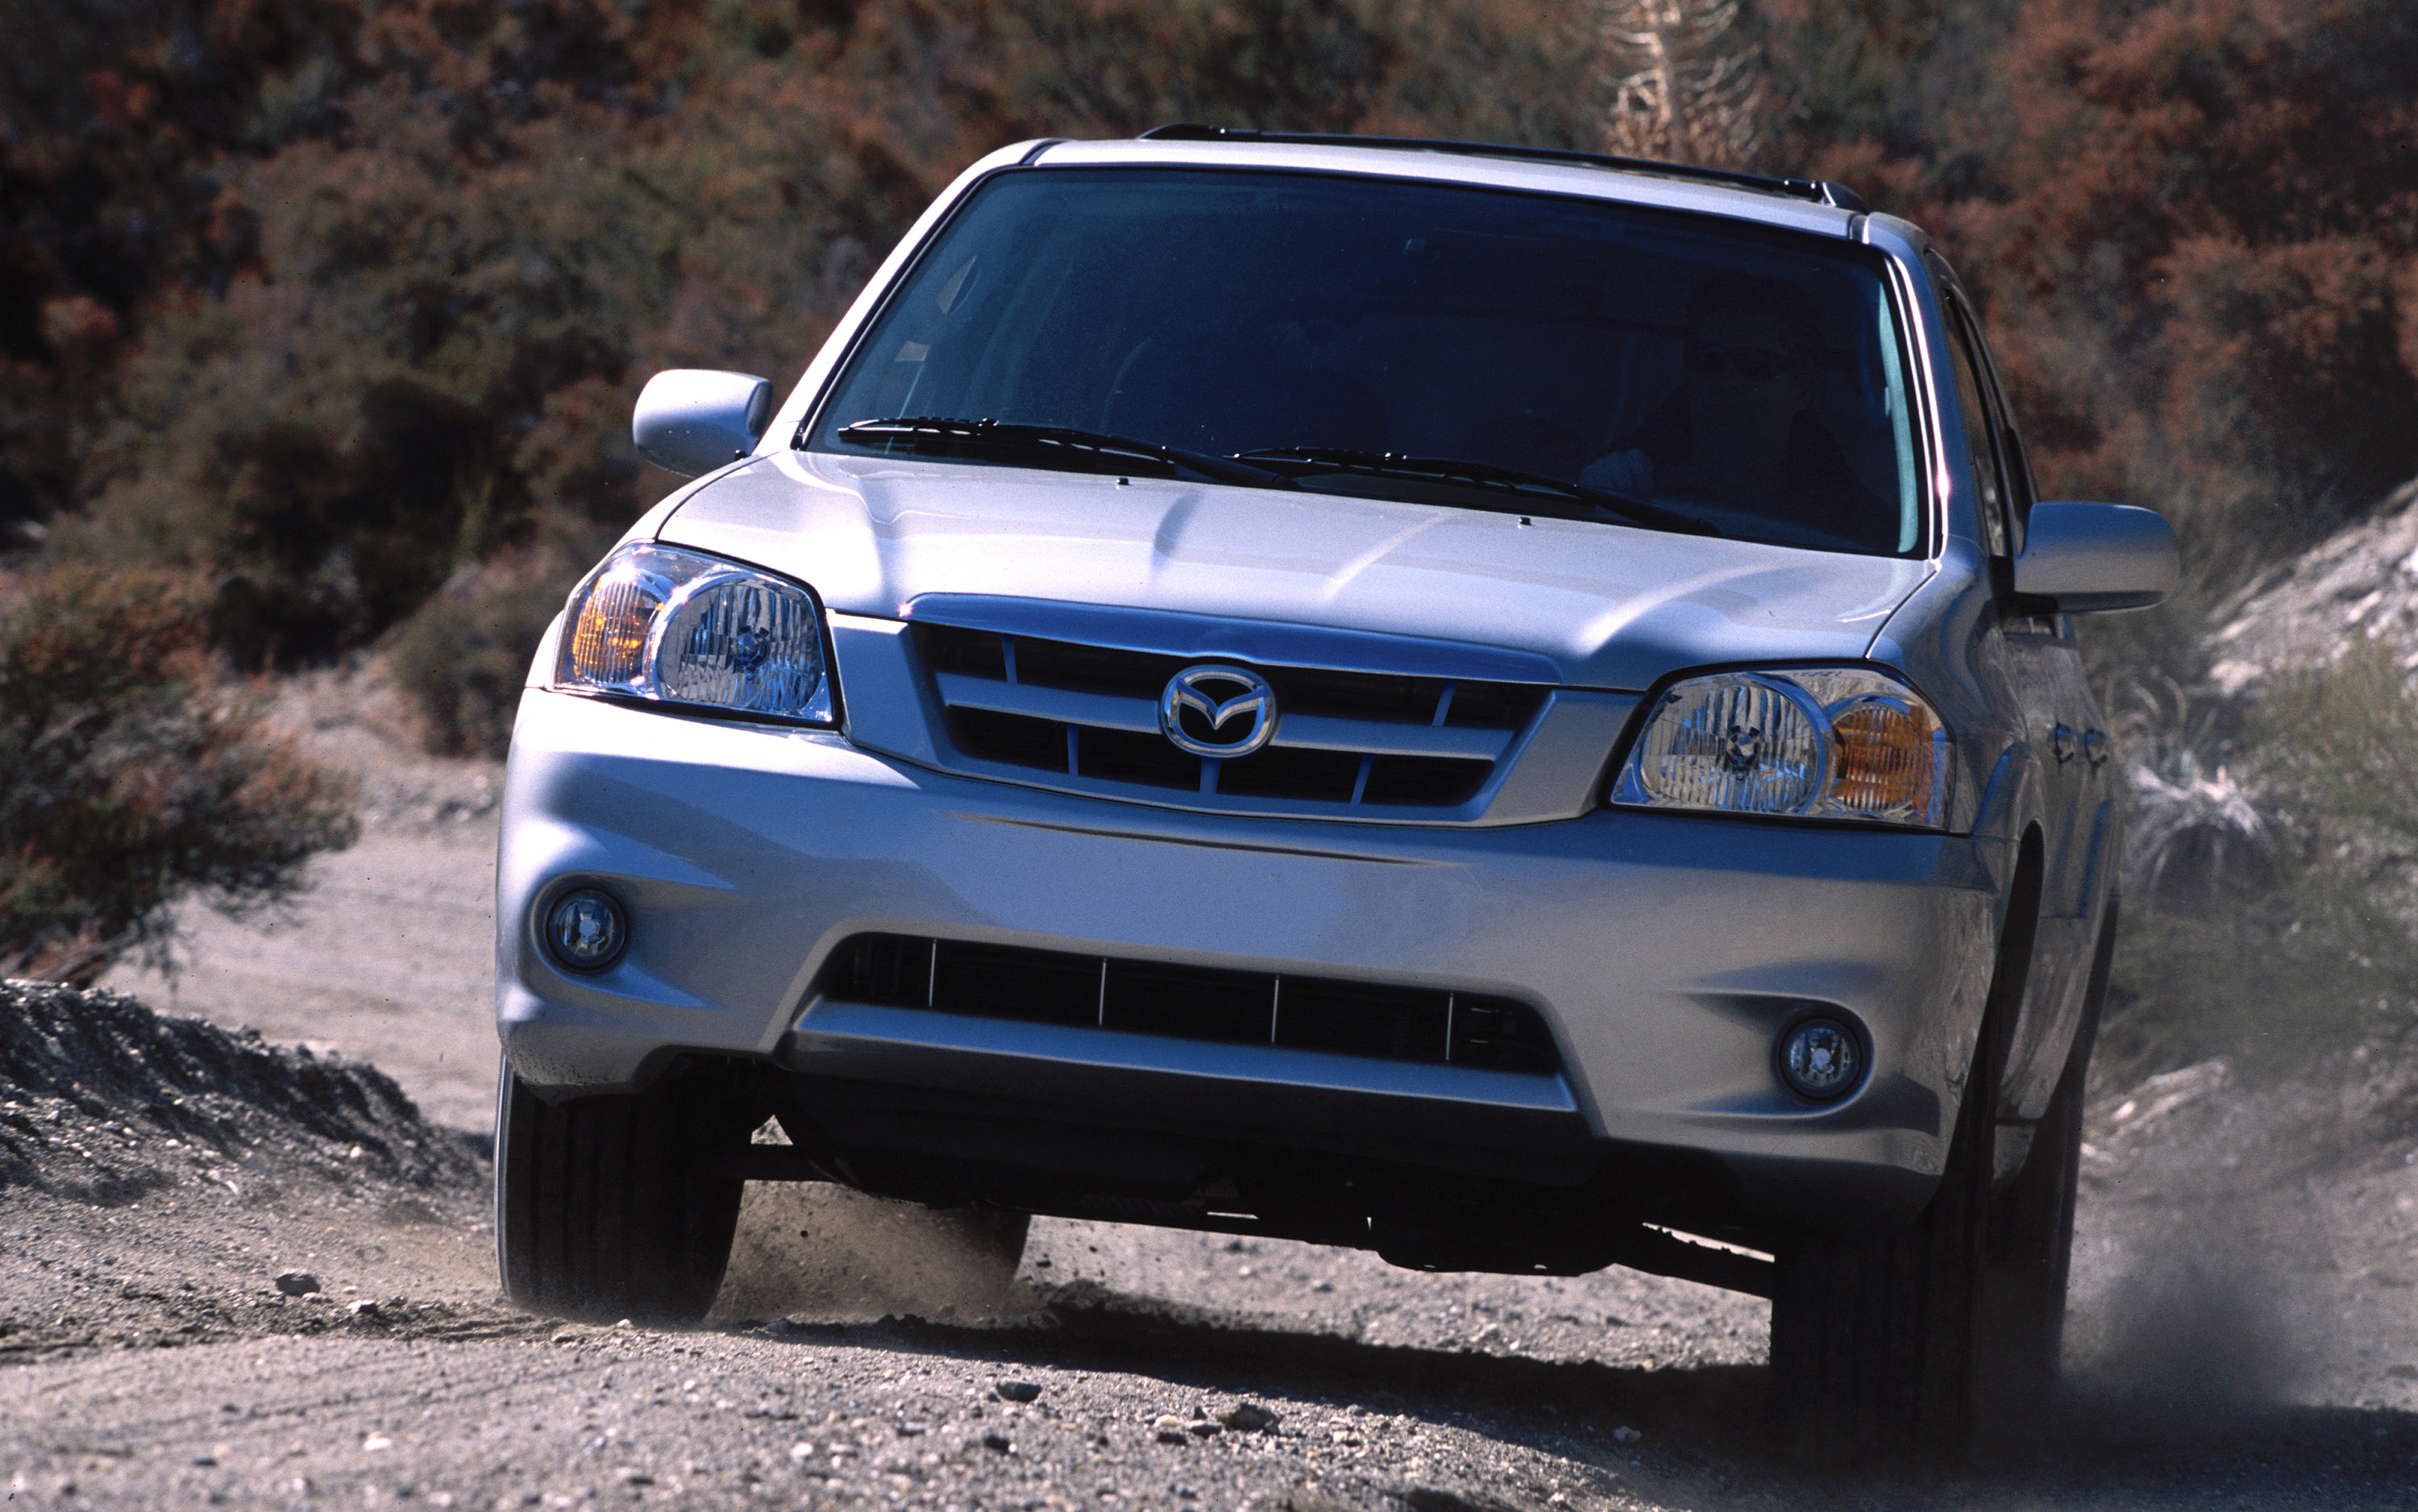 Recall: 2001-2002 Mazda Tribute Master Cylinder Leaks a Fire Hazard